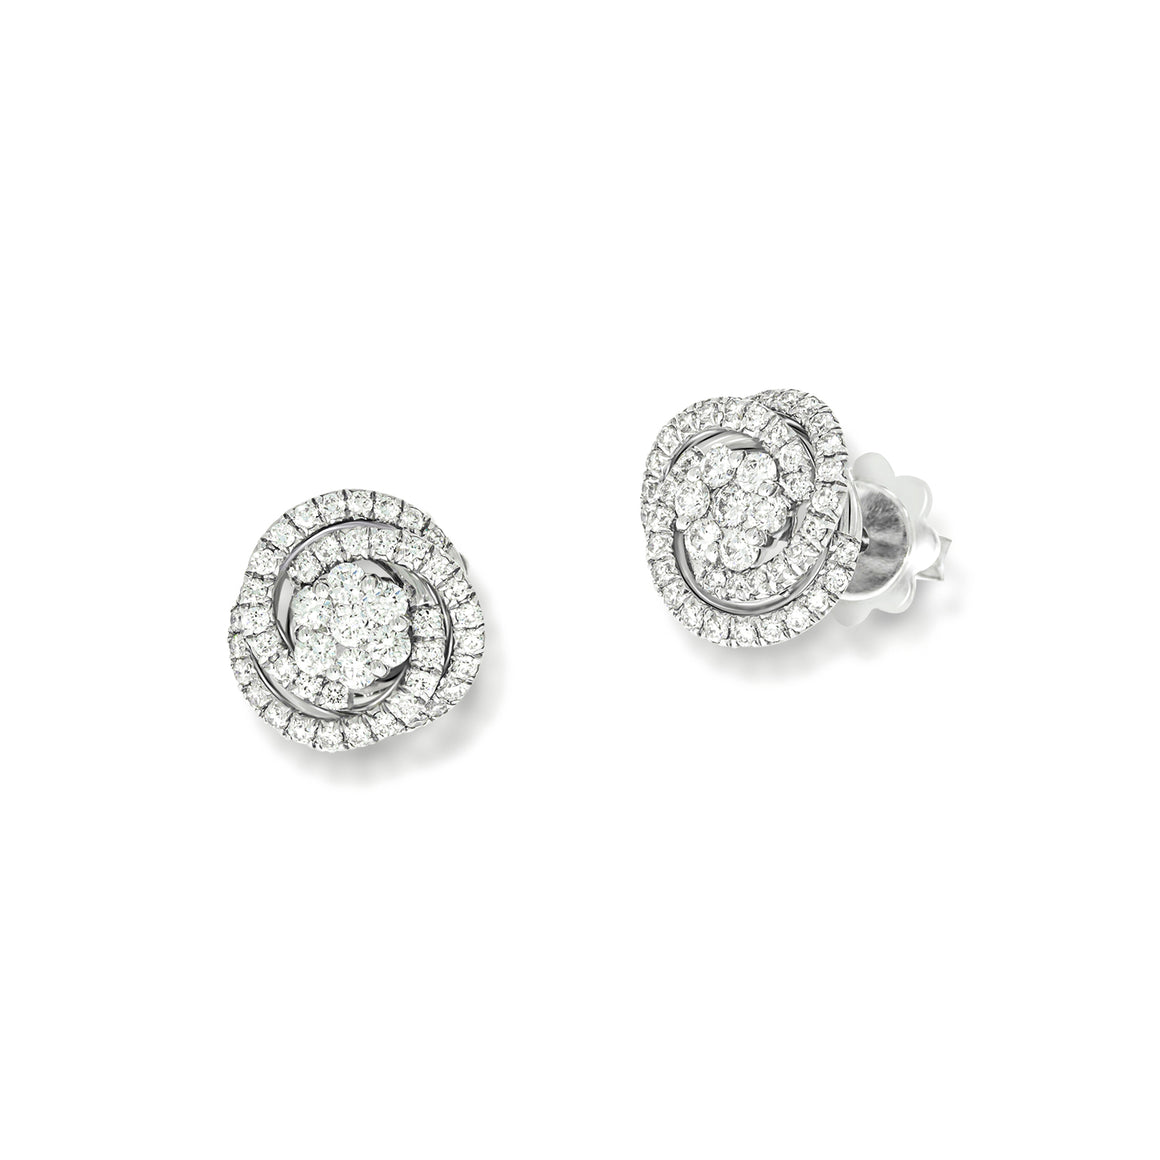 Halo Stud Earrings flower Shape with spiral diamonds around it.0.96 ct, 98 round natural sparkling diamonds, very Unique design, wedding set